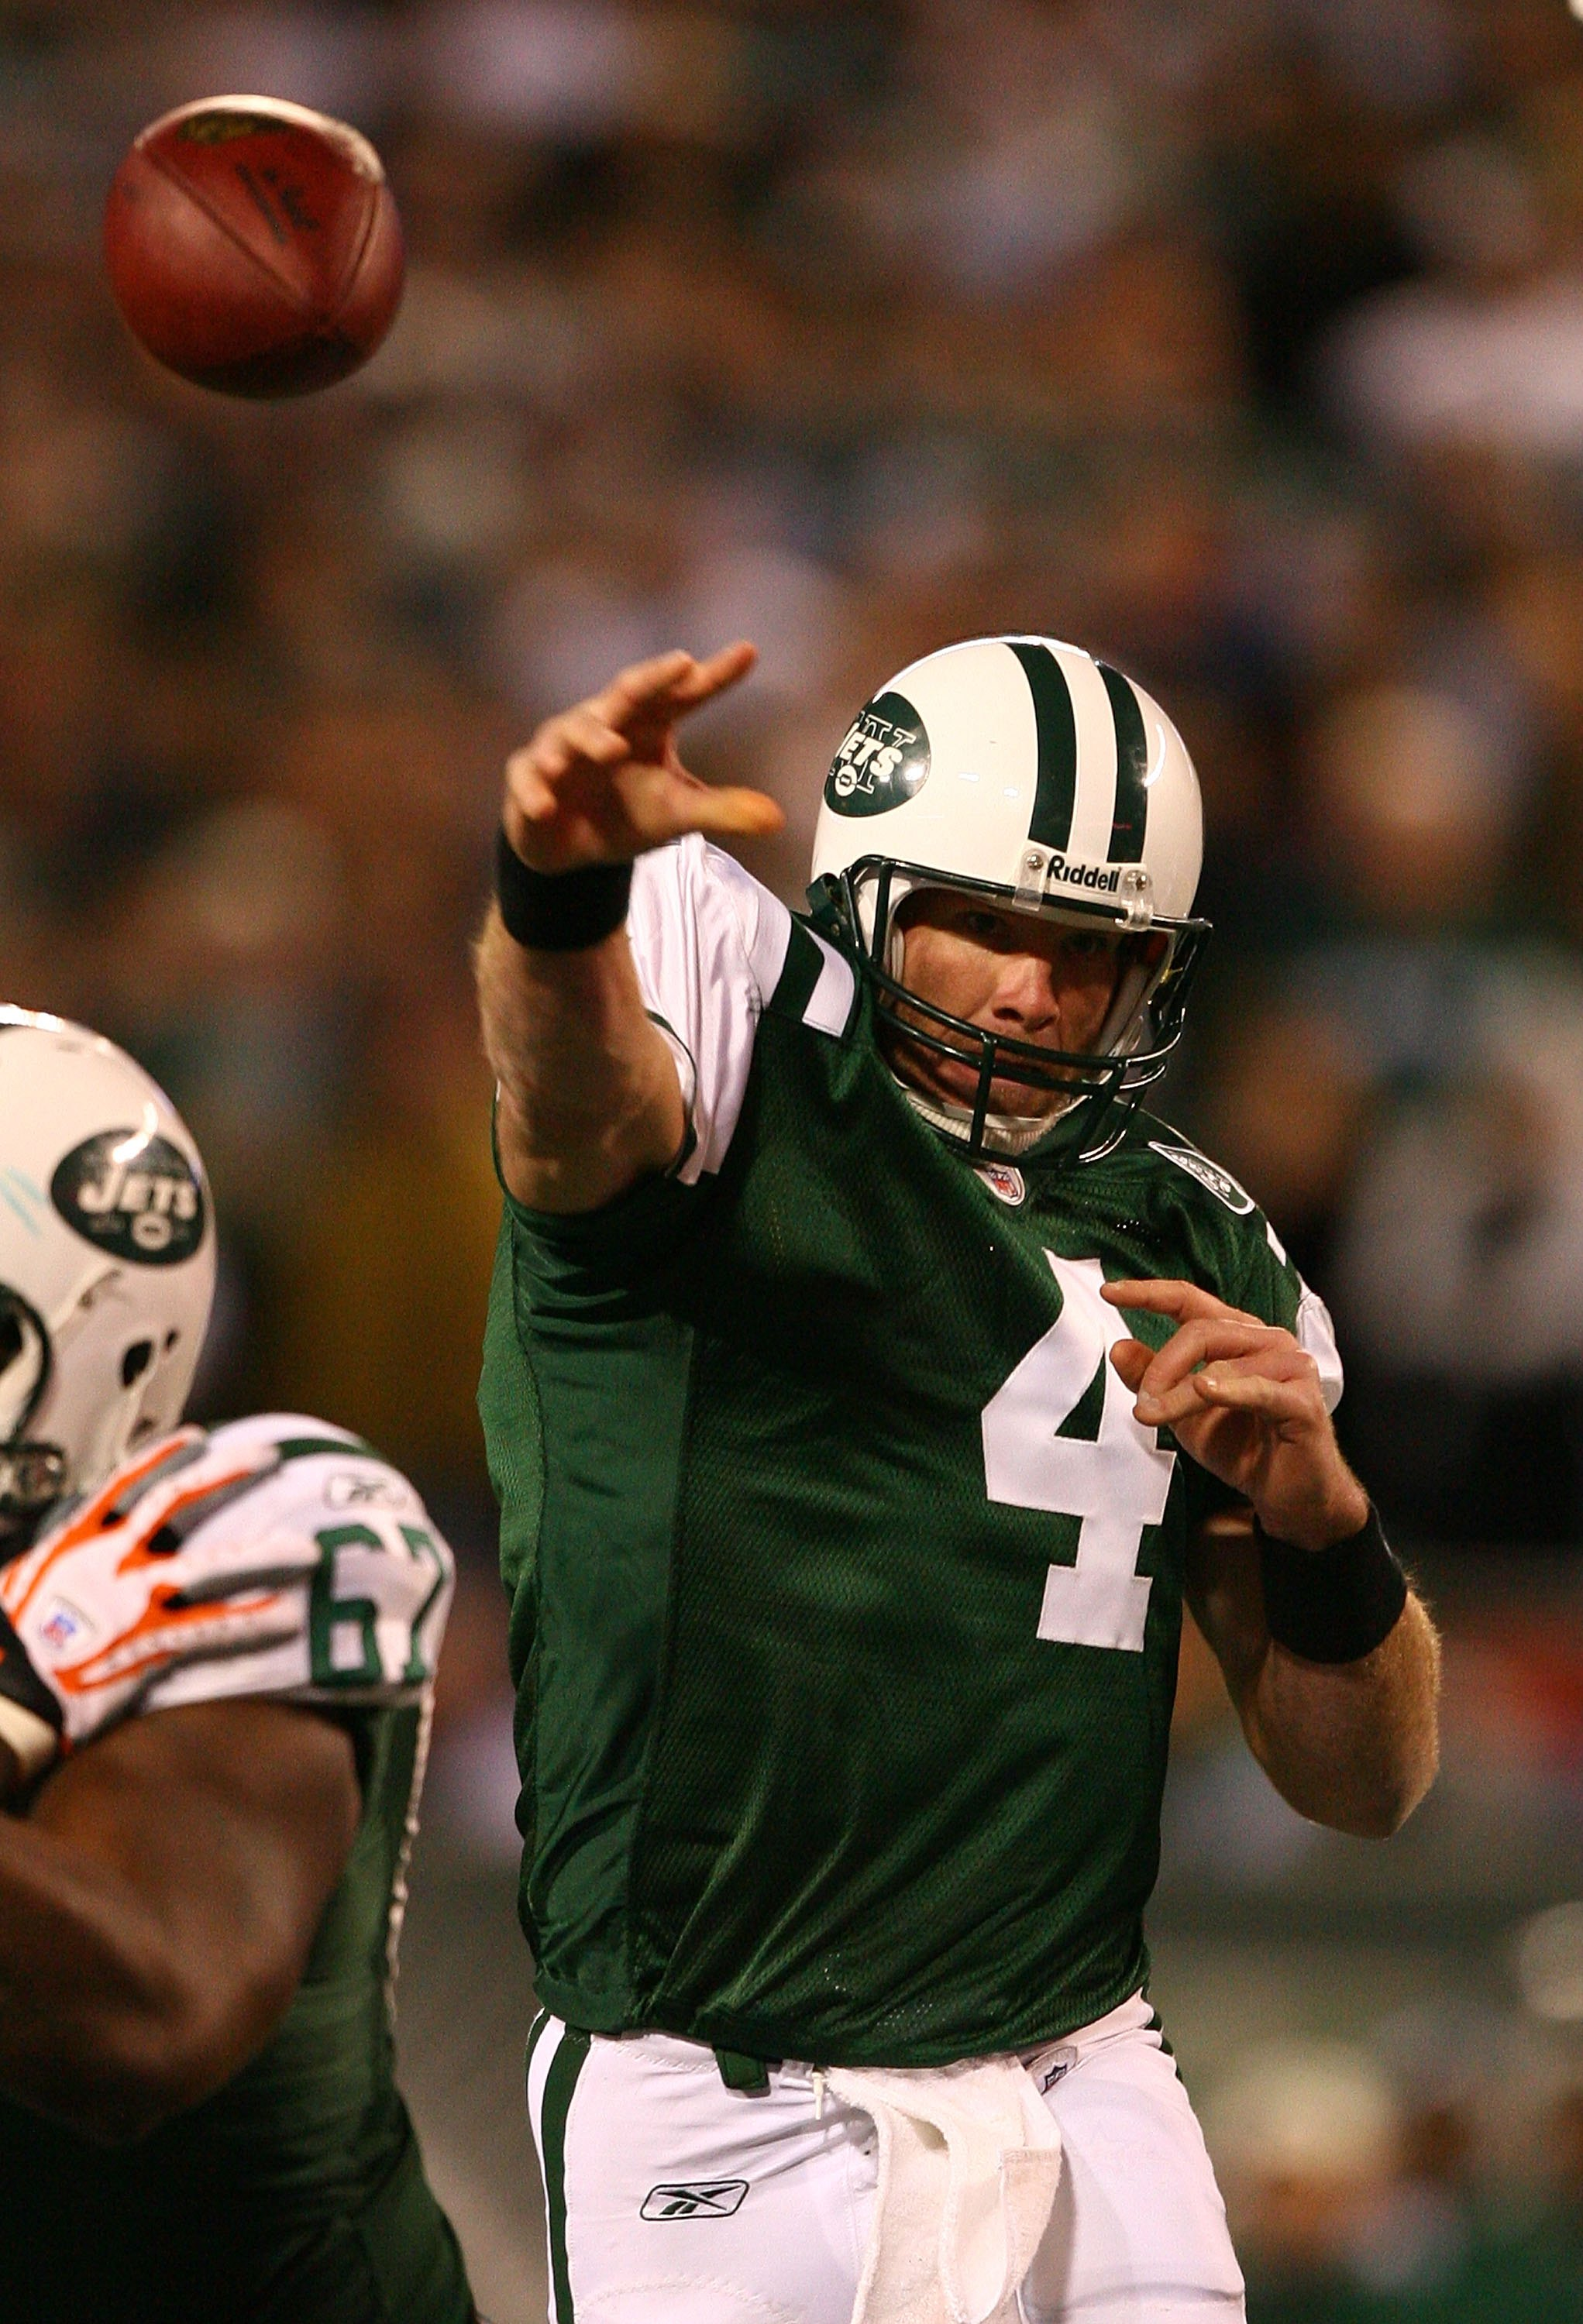 EAST RUTHERFORD, NJ - DECEMBER 28:  Brett Favre #4 of The New York Jets passes the ball against The Miami Dolphins during their game on December 28, 2008 at Giants Stadium in East Rutherford, New Jersey.  (Photo by Al Bello/Getty Images)